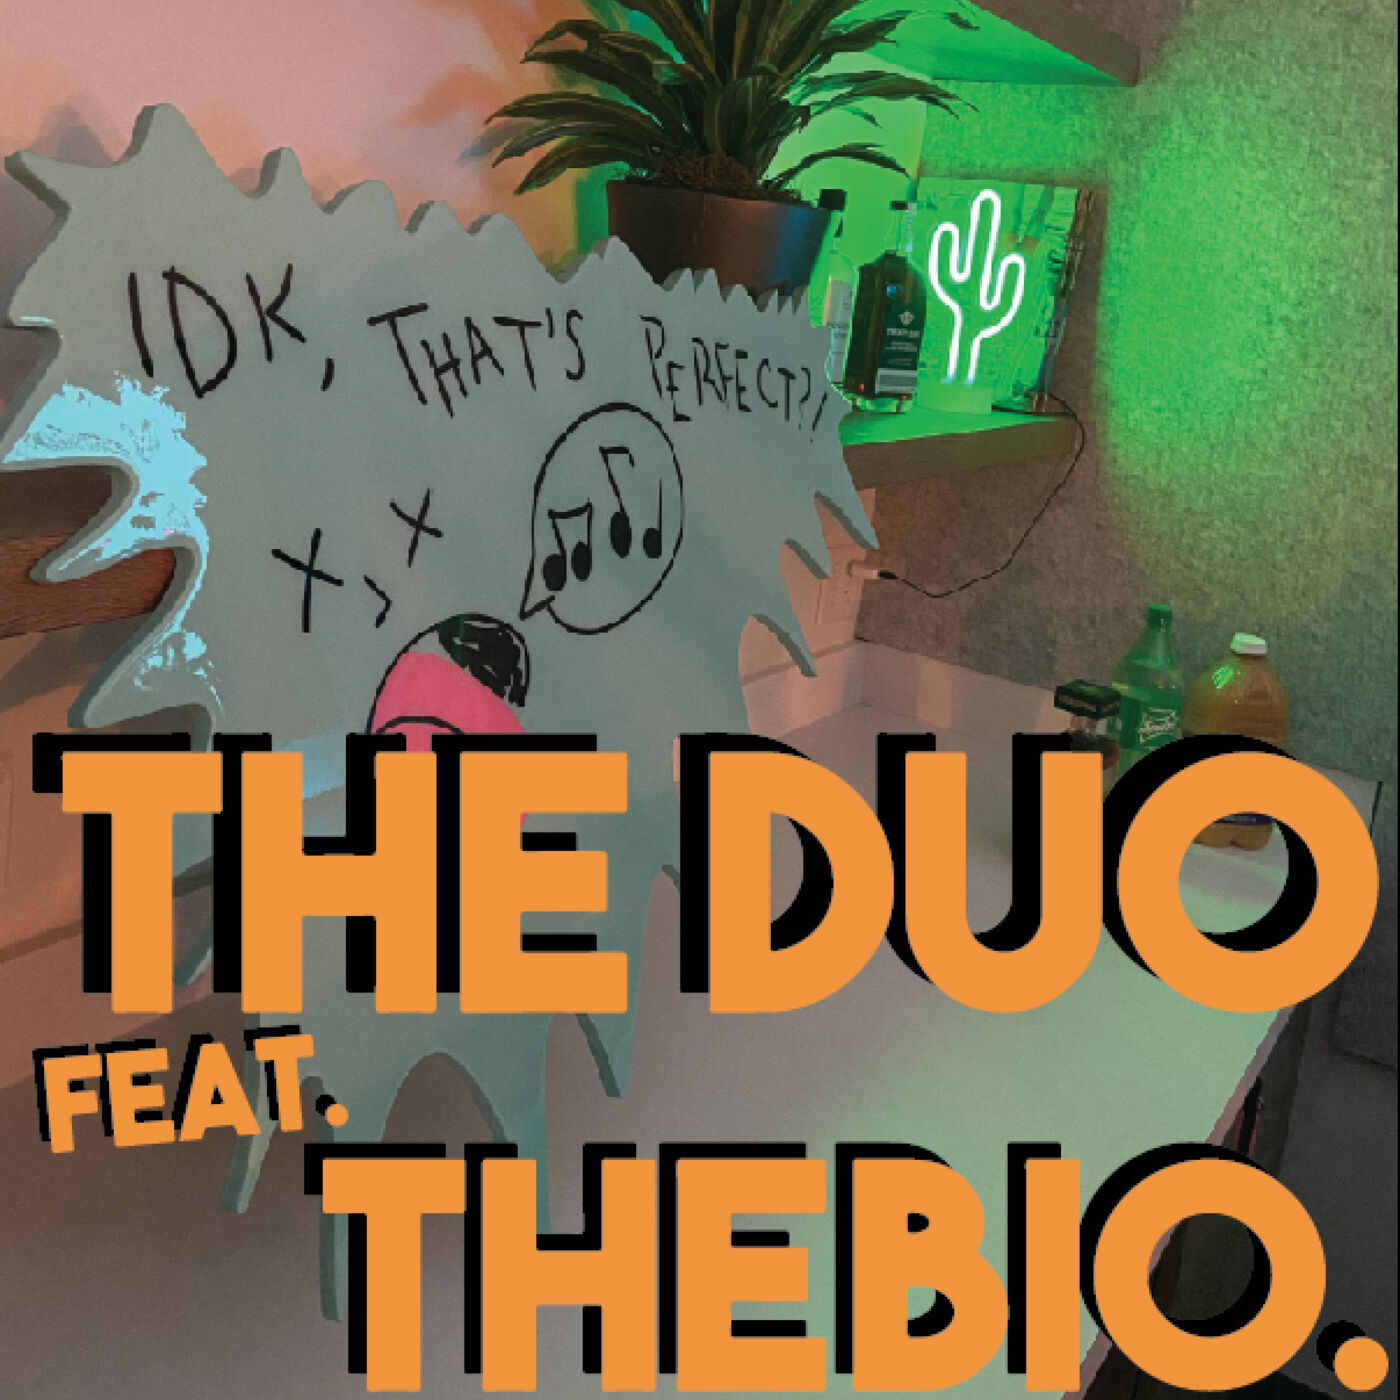 IDK, That's The Duo Feat. TheBio.?!